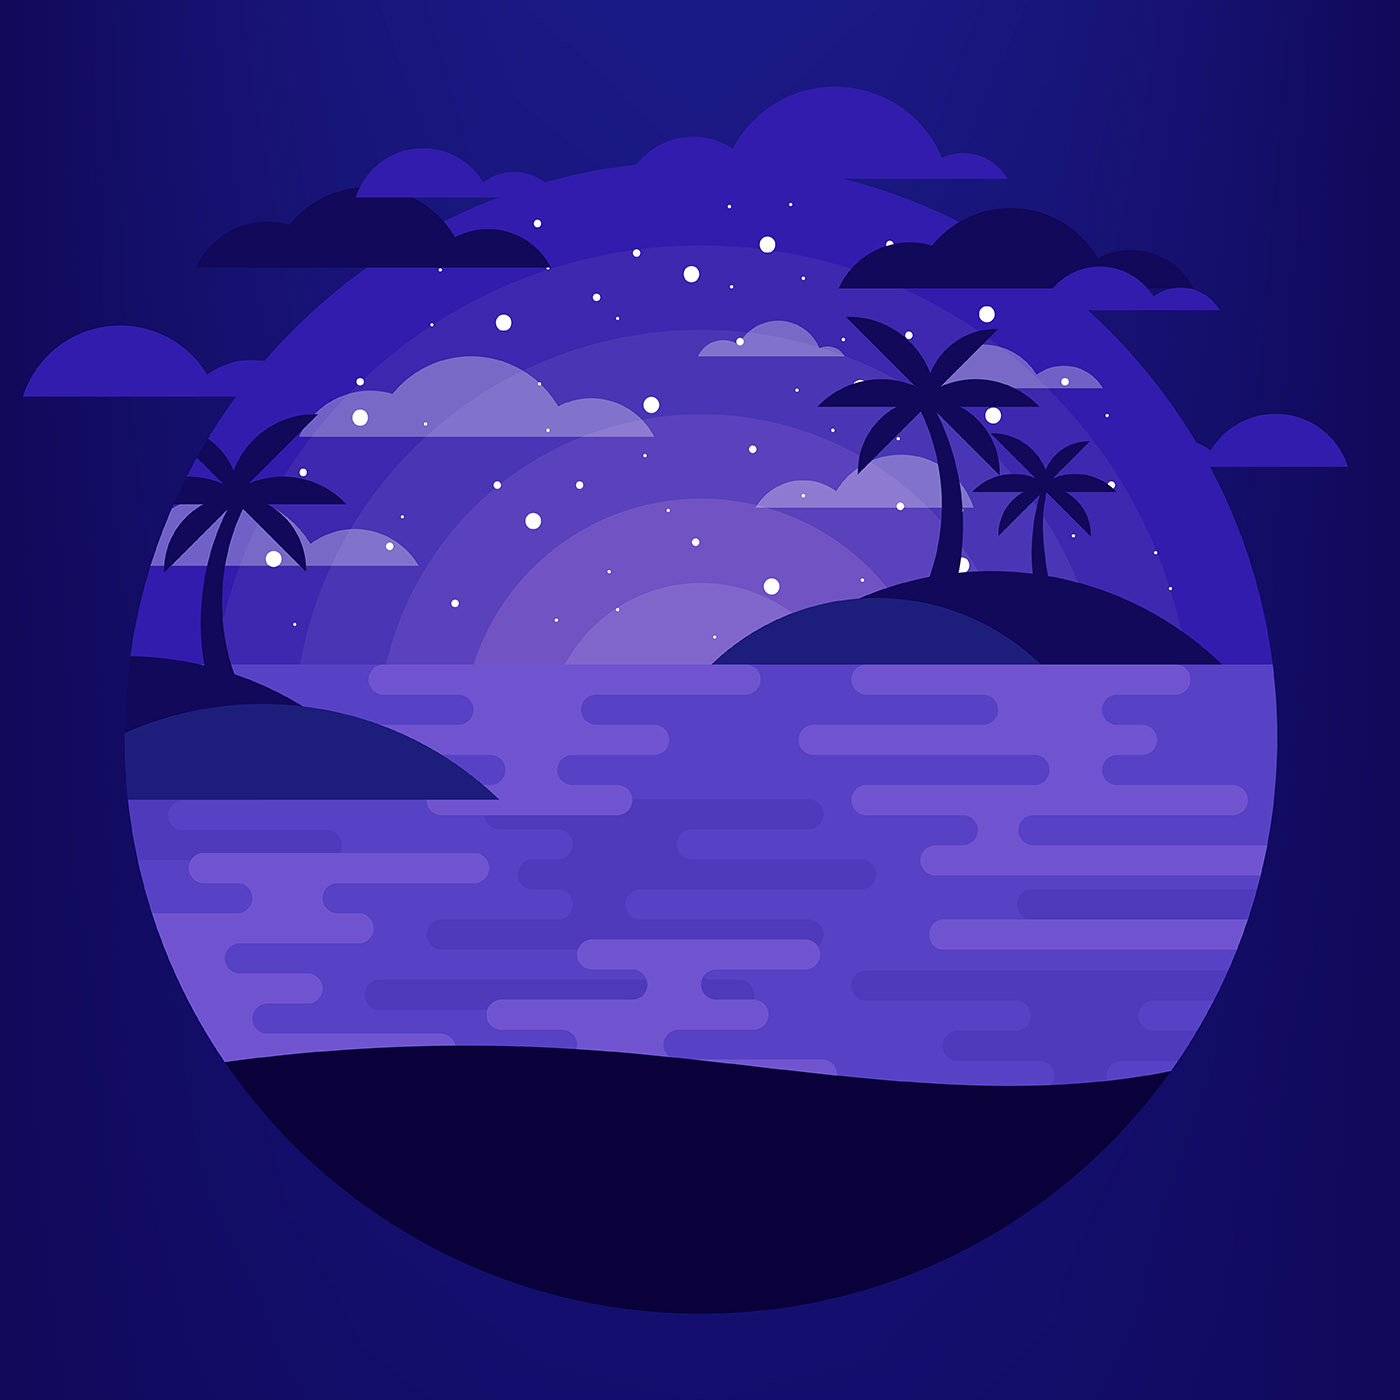 Night Time Beach Illustration - Download Free Vectors ...